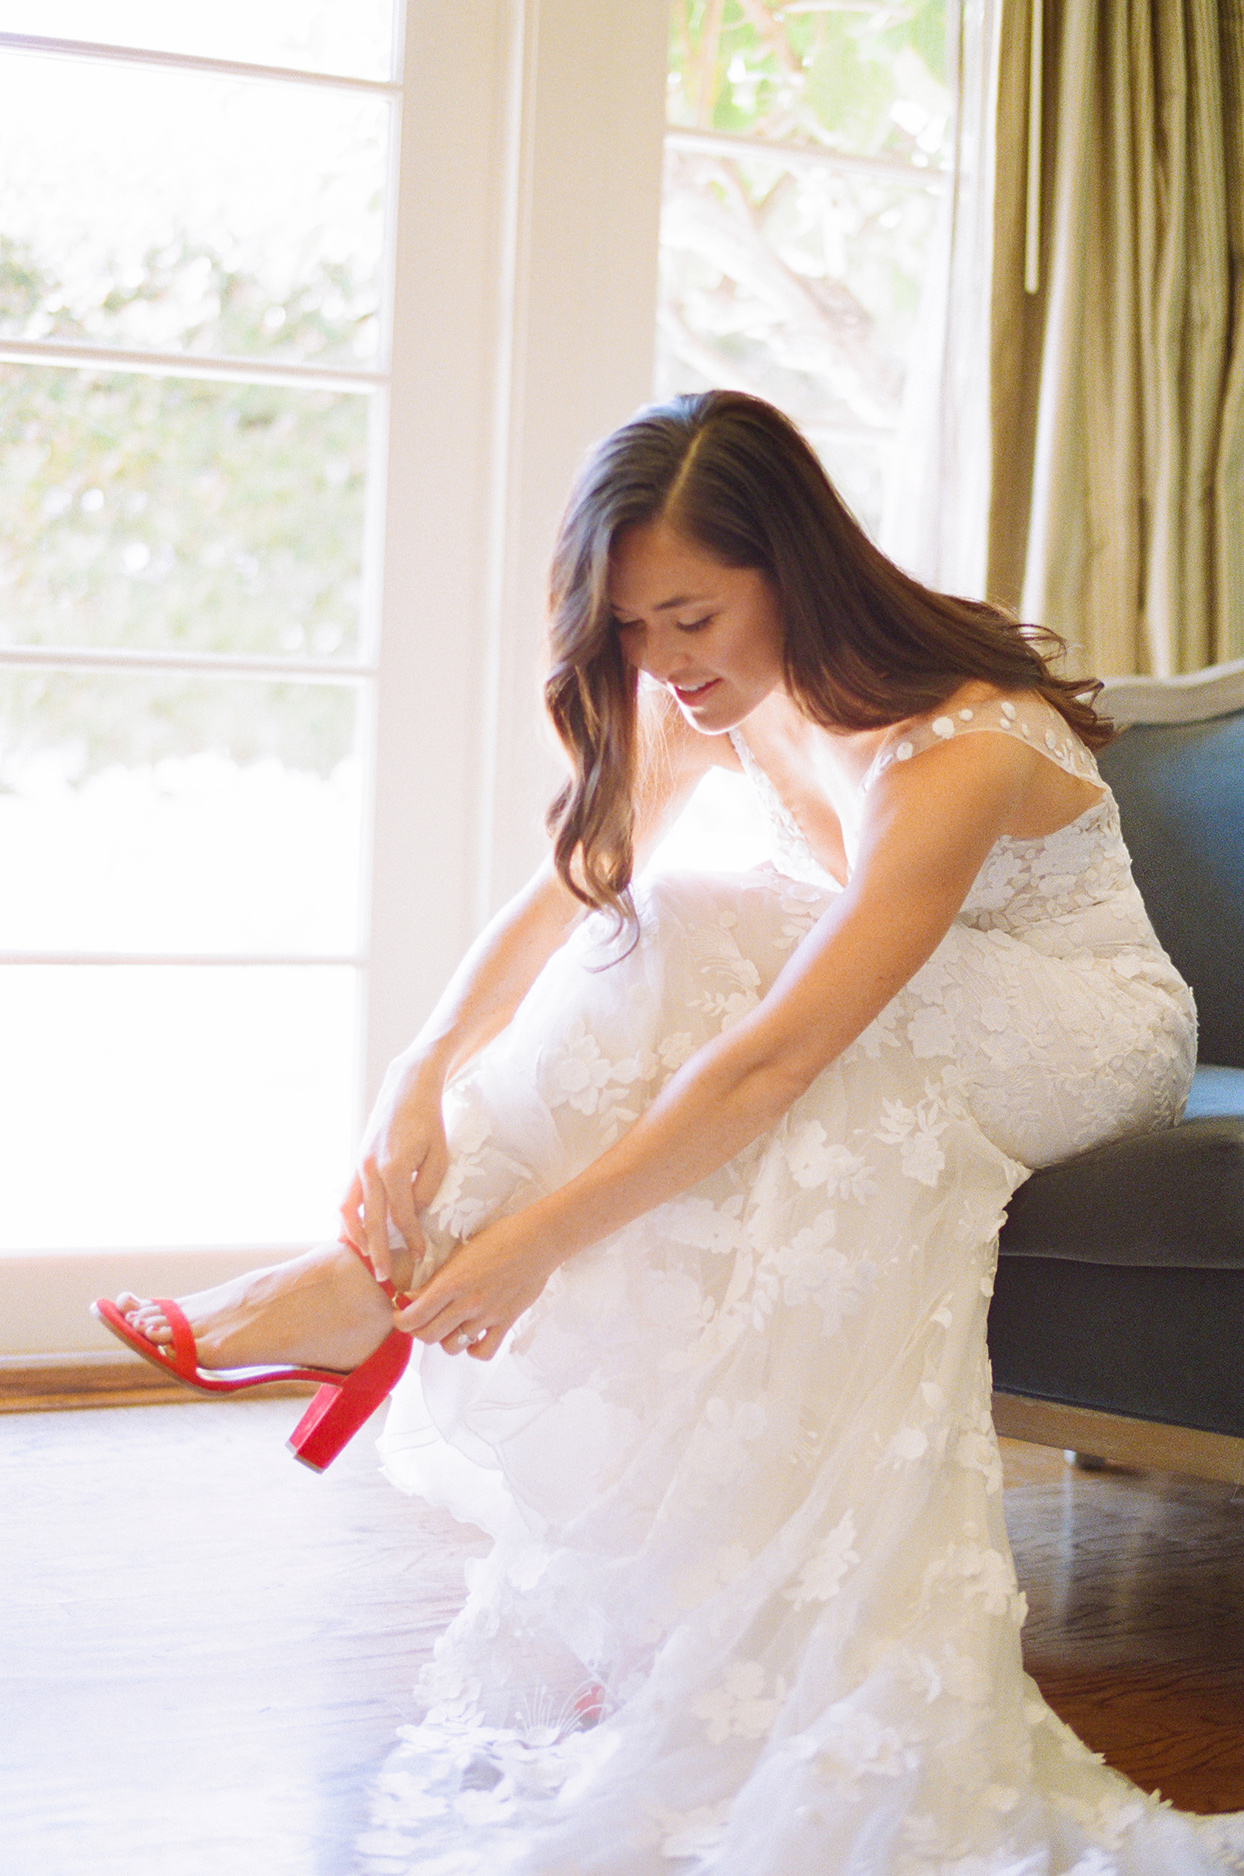 Bride in Mira Zwillinger gown with lace fit-and-flare with hand-embroidered flowers and red open-toe heels from Stuart Weitzman